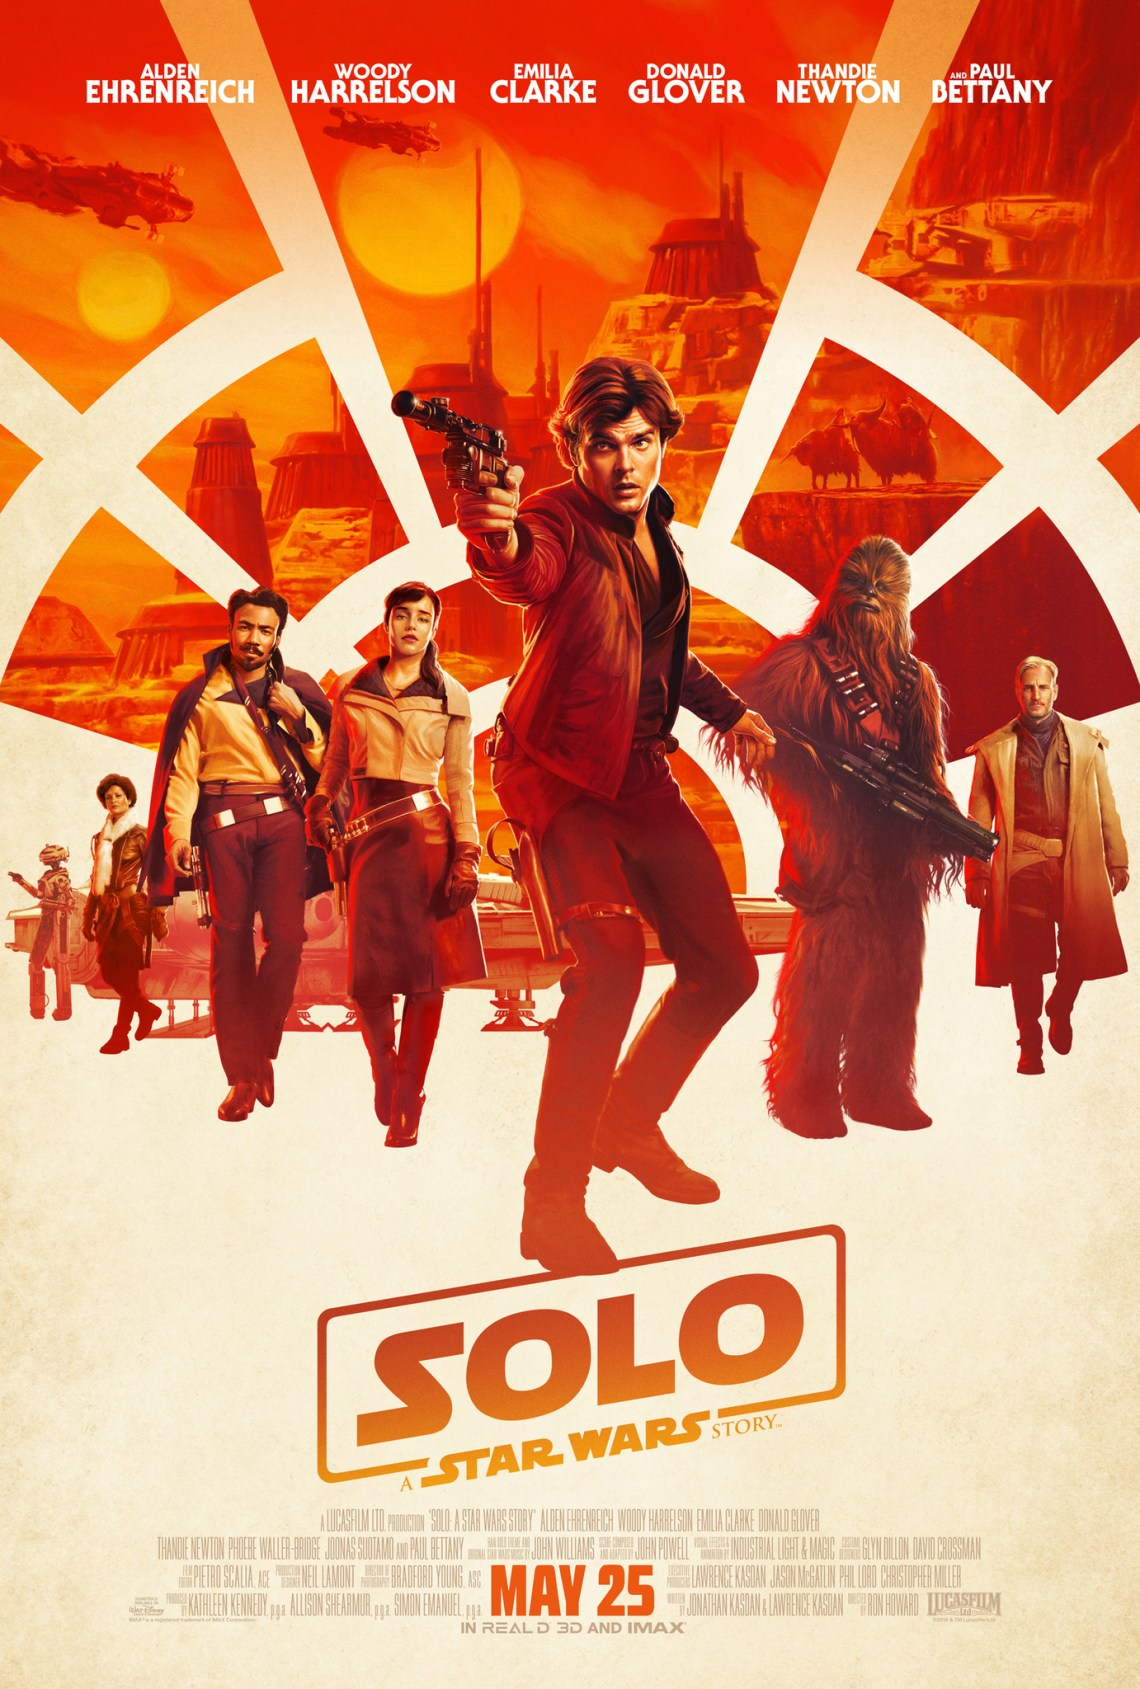 Star Wars Film - Solo Poster